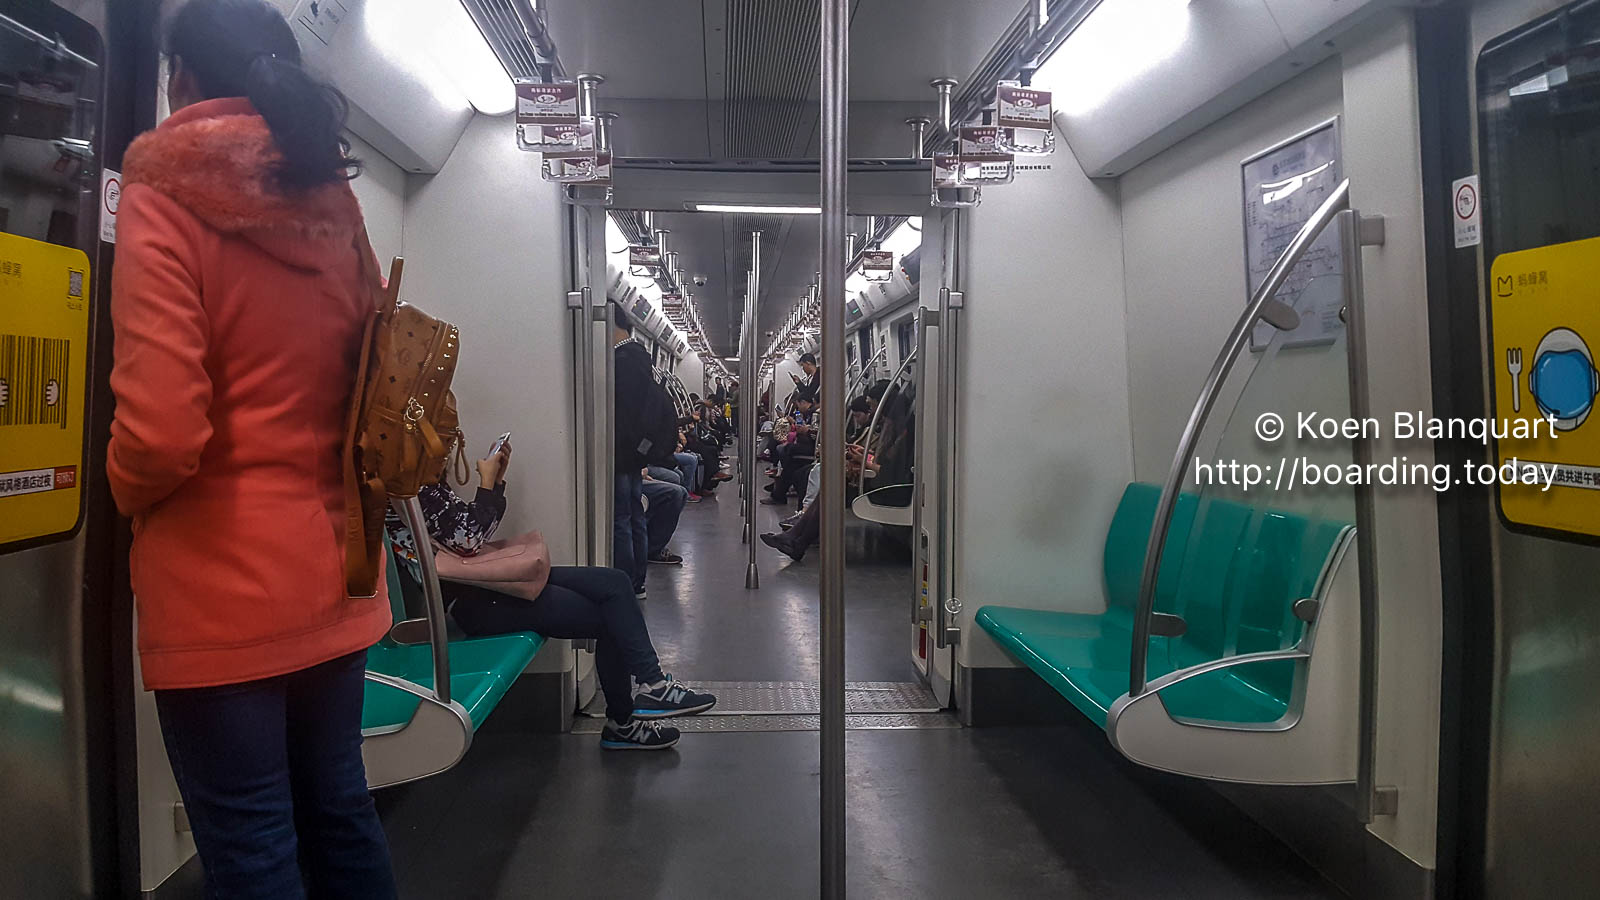 A rare image of a non-crowded Beijing Subway|Metro train